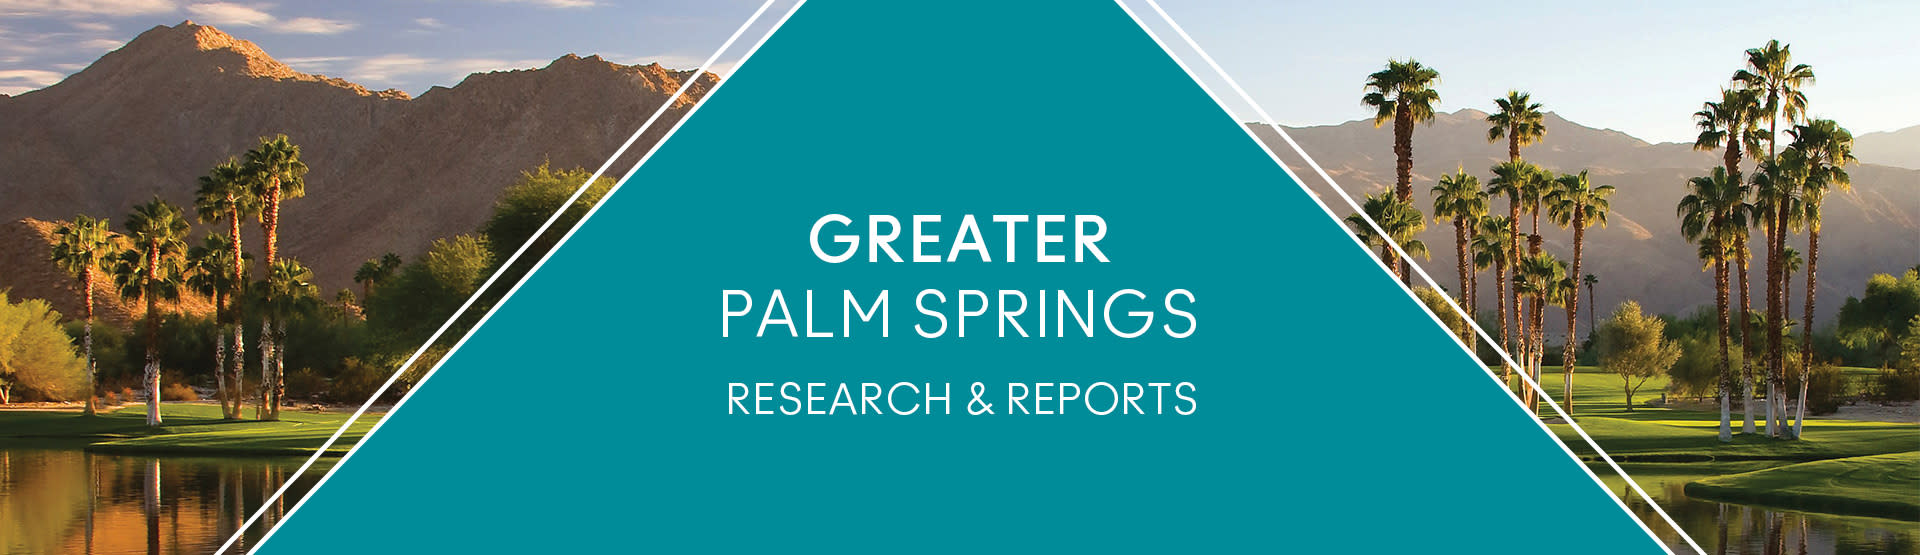 Research & Report